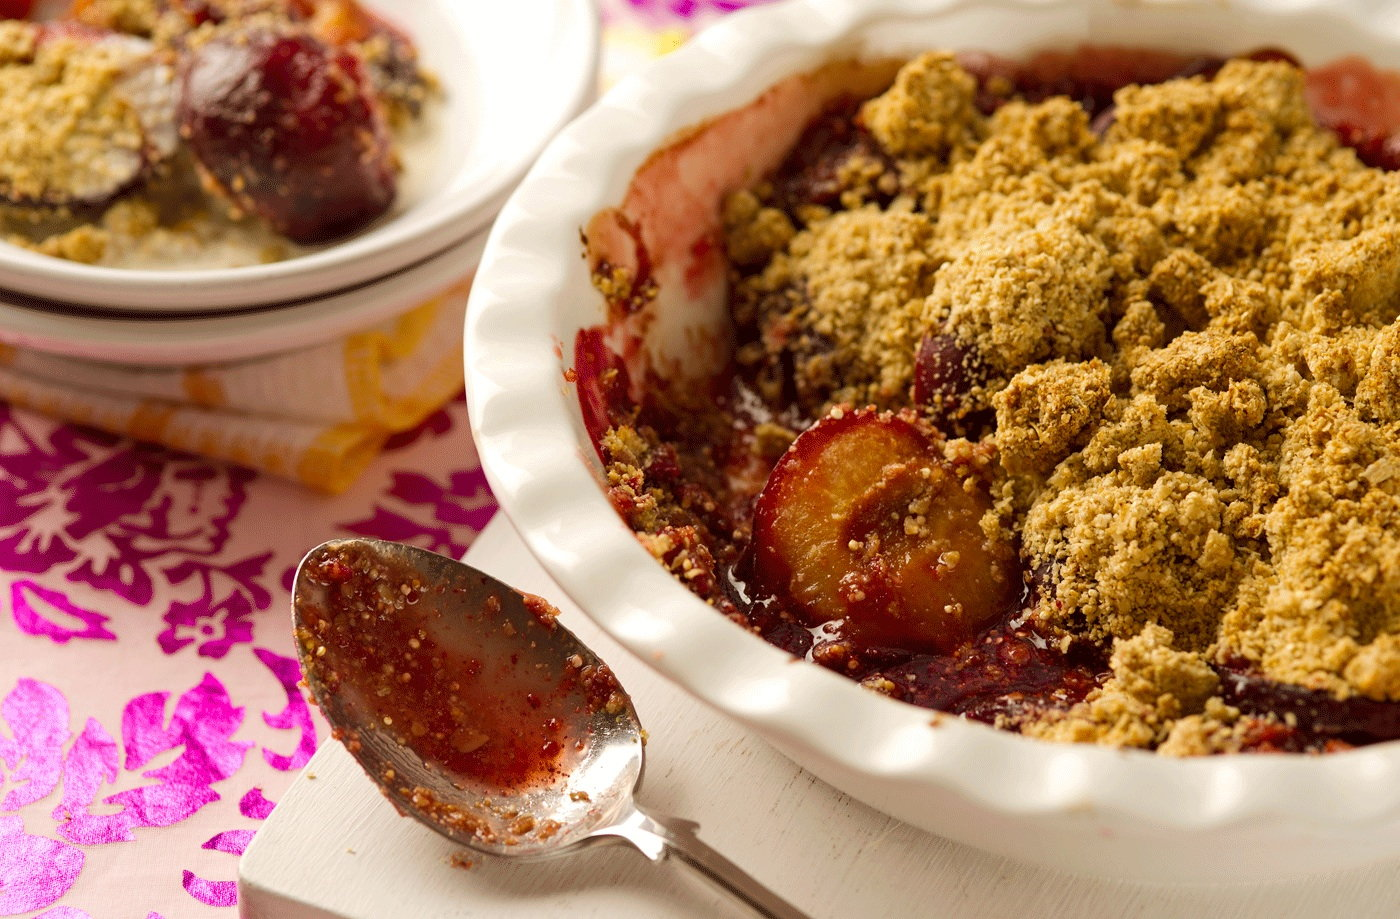 Gluten-free plum, quinoa and oat crumble recipe